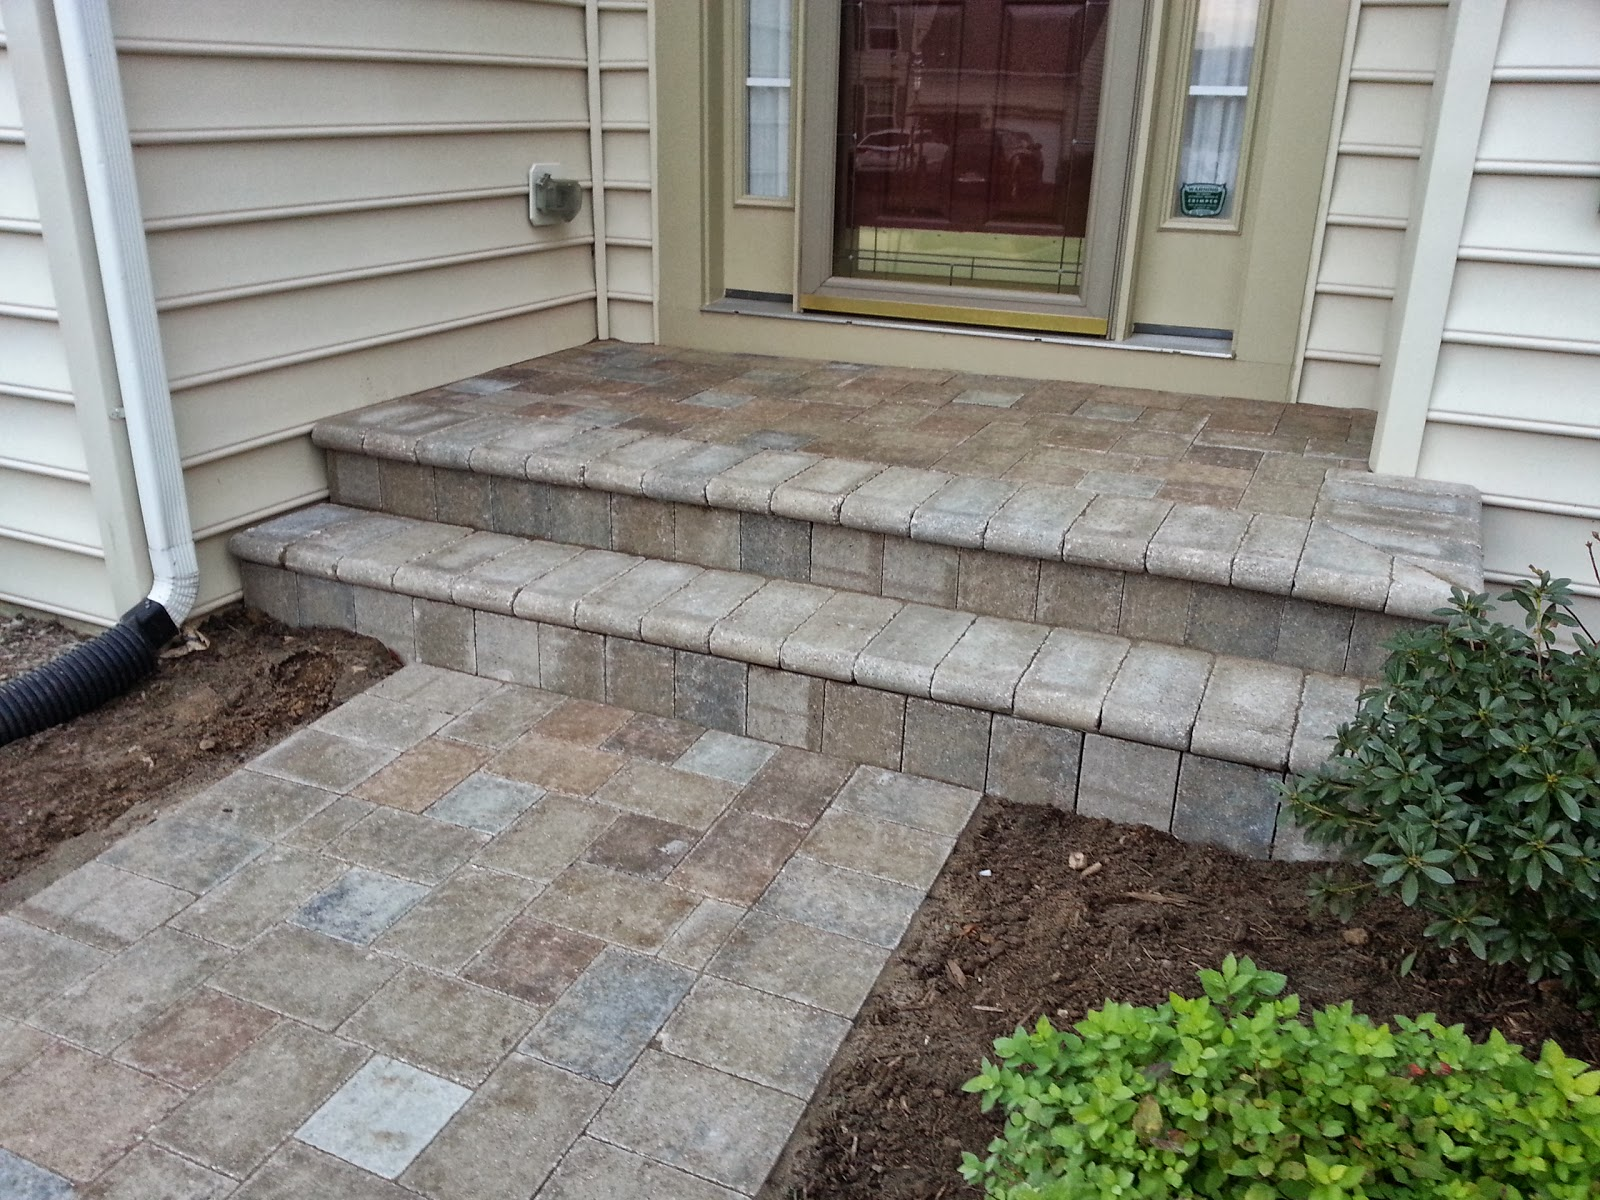 Chiseled Paver Front Walkway  Life Time Pavers. Brick Patio Paver Designs. Outside Patio Ideas Pinterest. Diy Patio Cooler Table. Brick Patio Grill. Slate Patio Blocks. Slate For Patio. Patio Tomatoes Home Depot. Outdoor Patio Hanging Lights